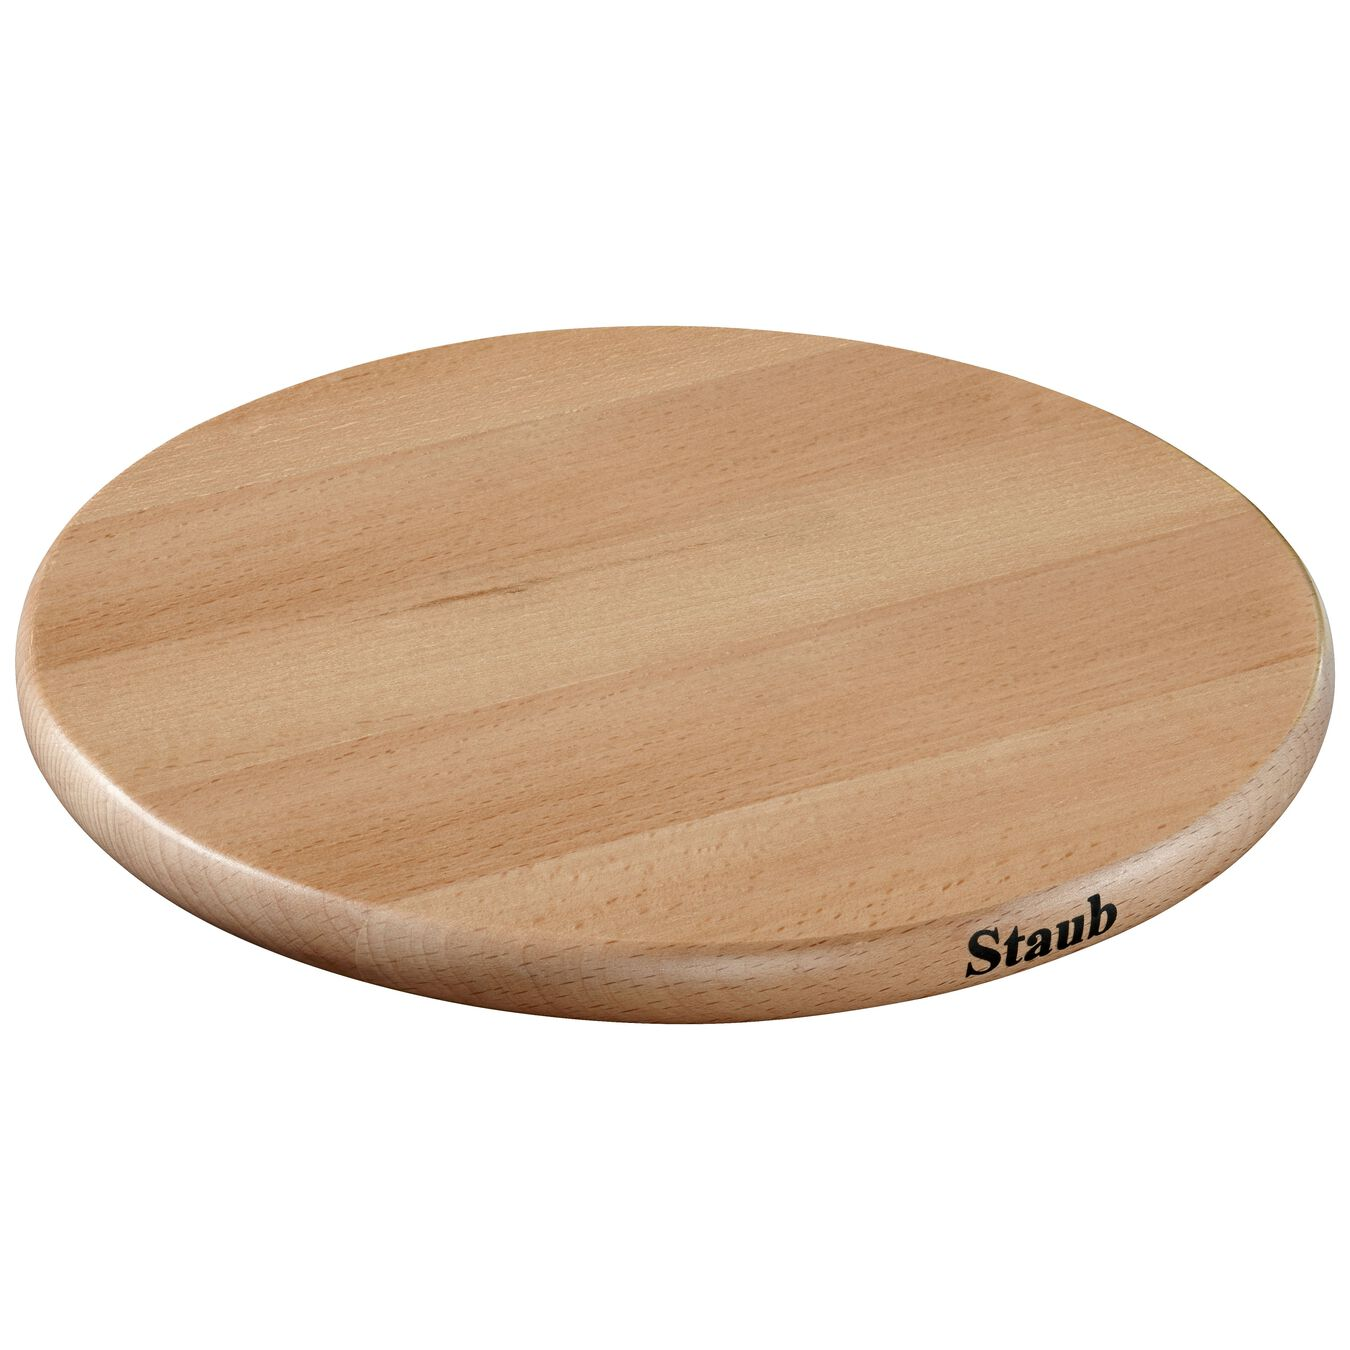 6-inch Round Magnetic Wood Trivet,,large 1